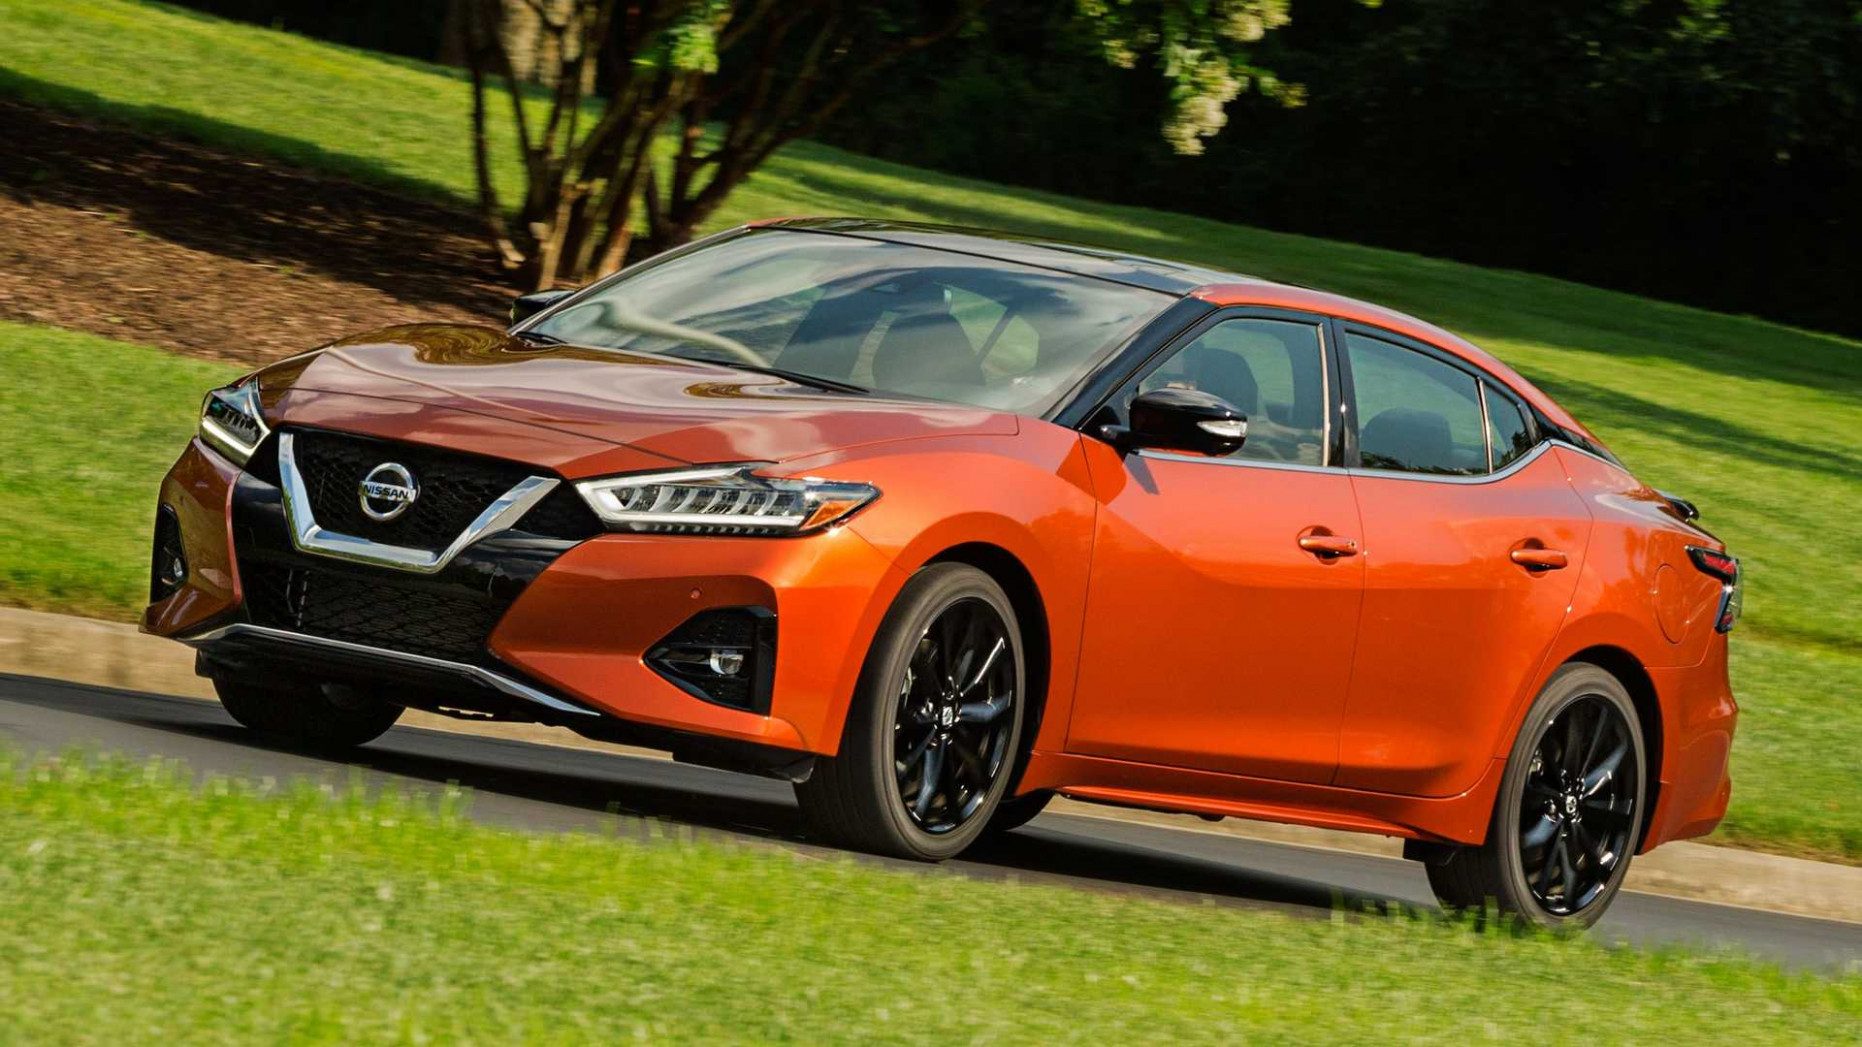 Photos When Will The 2022 Nissan Maxima Come Out